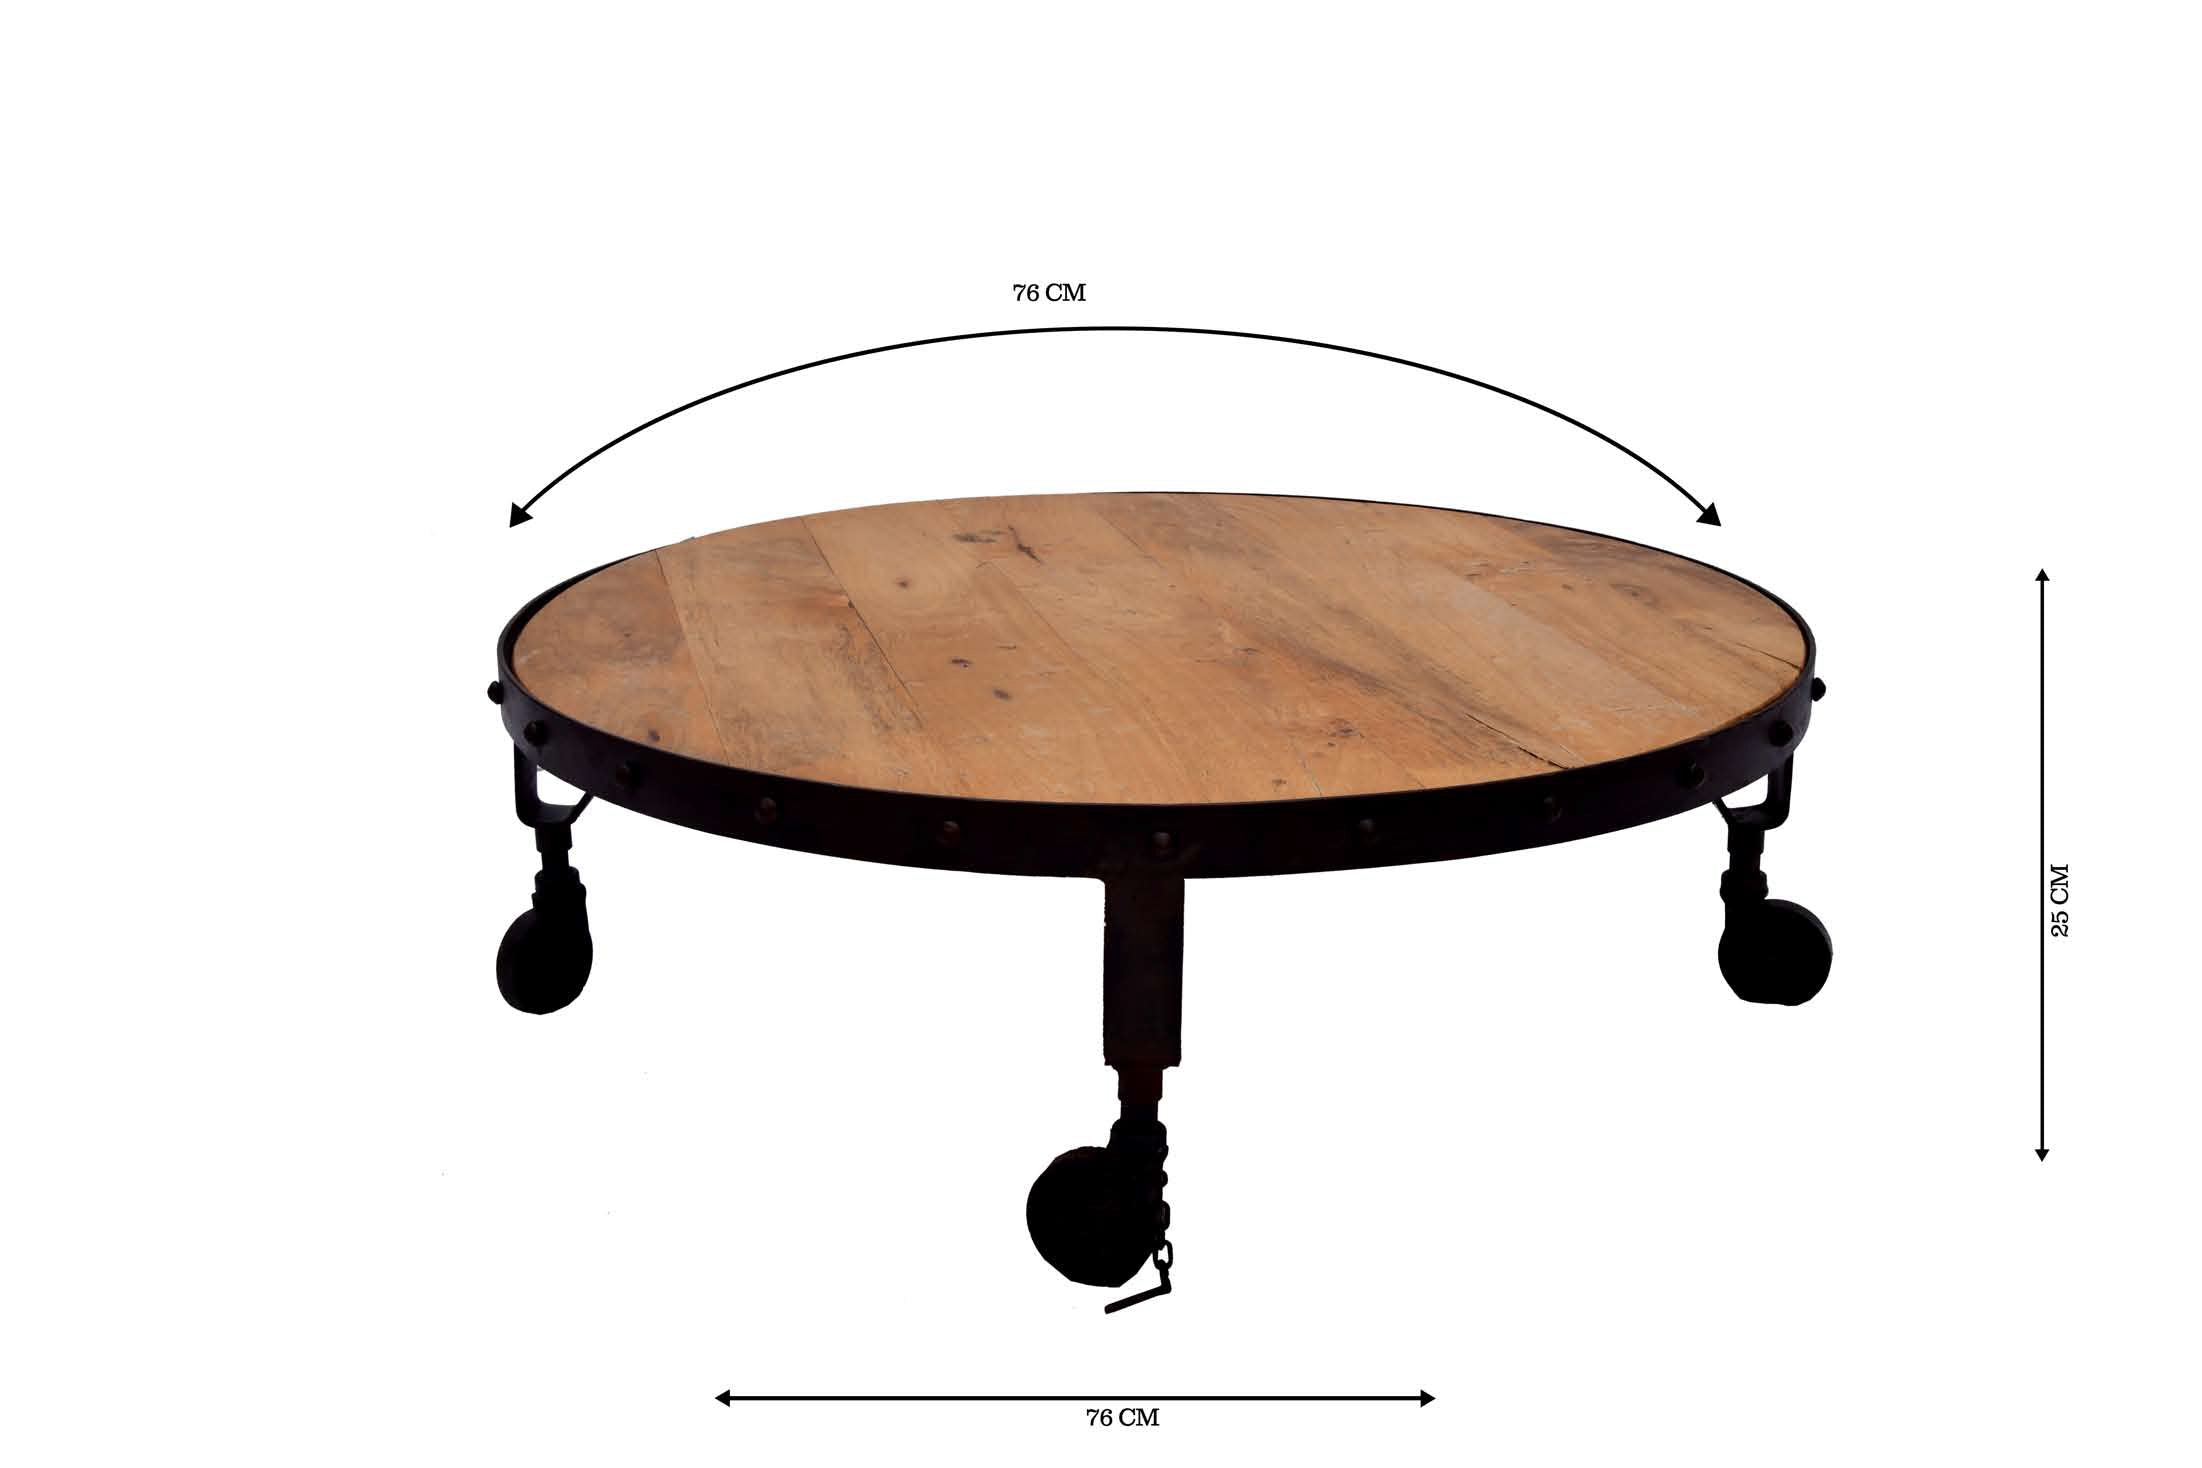 Wondrous Metal And Wood Round Coffee Table With Wheels Avyan Download Free Architecture Designs Scobabritishbridgeorg